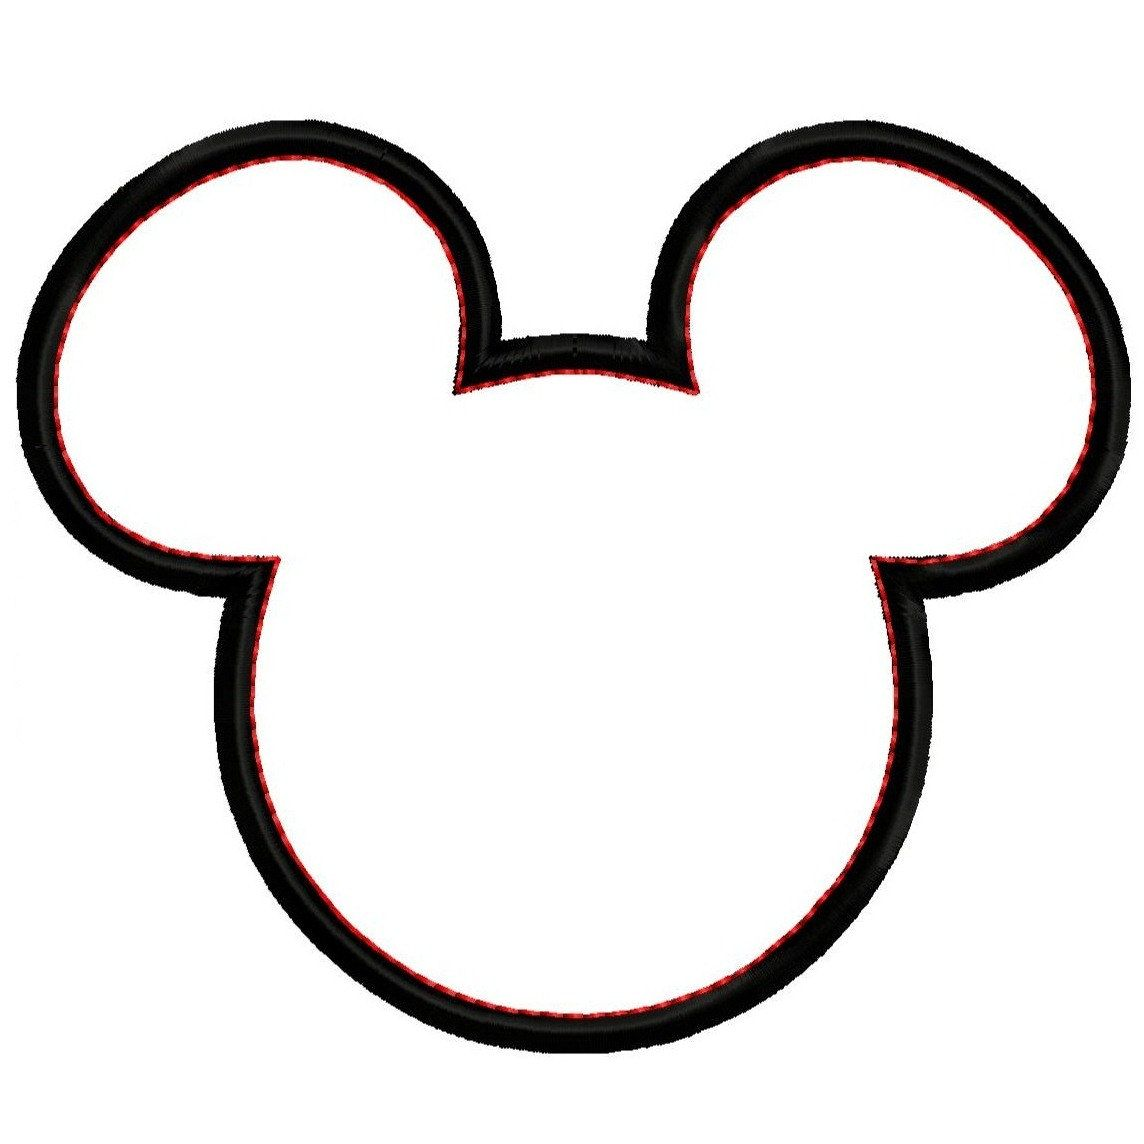 Nieuw Mickey Mouse Head Silhouette Clipart Panda Free Clipart Images SX-21